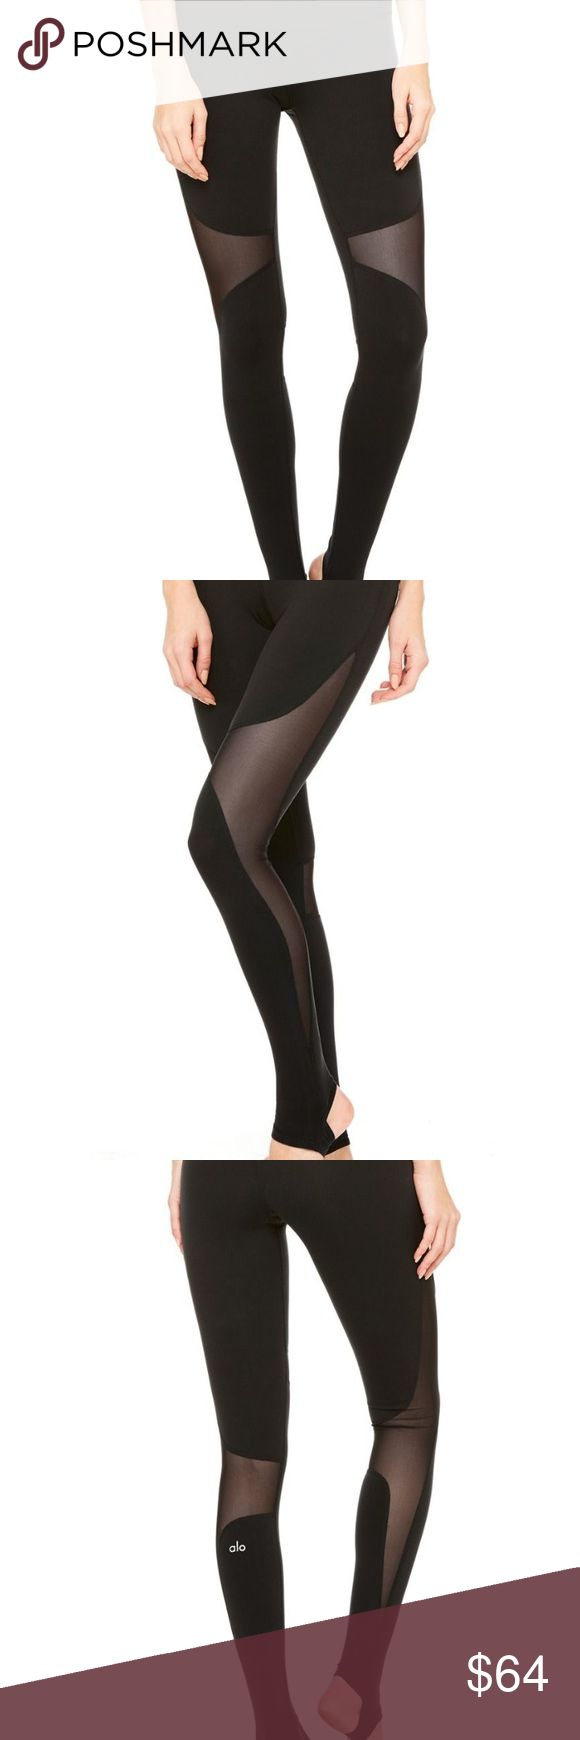 ALO Coast Leggings black xs BNWT never worn brand spanking new y'all! Get em while they're hot! ALO Yoga Pants Leggings